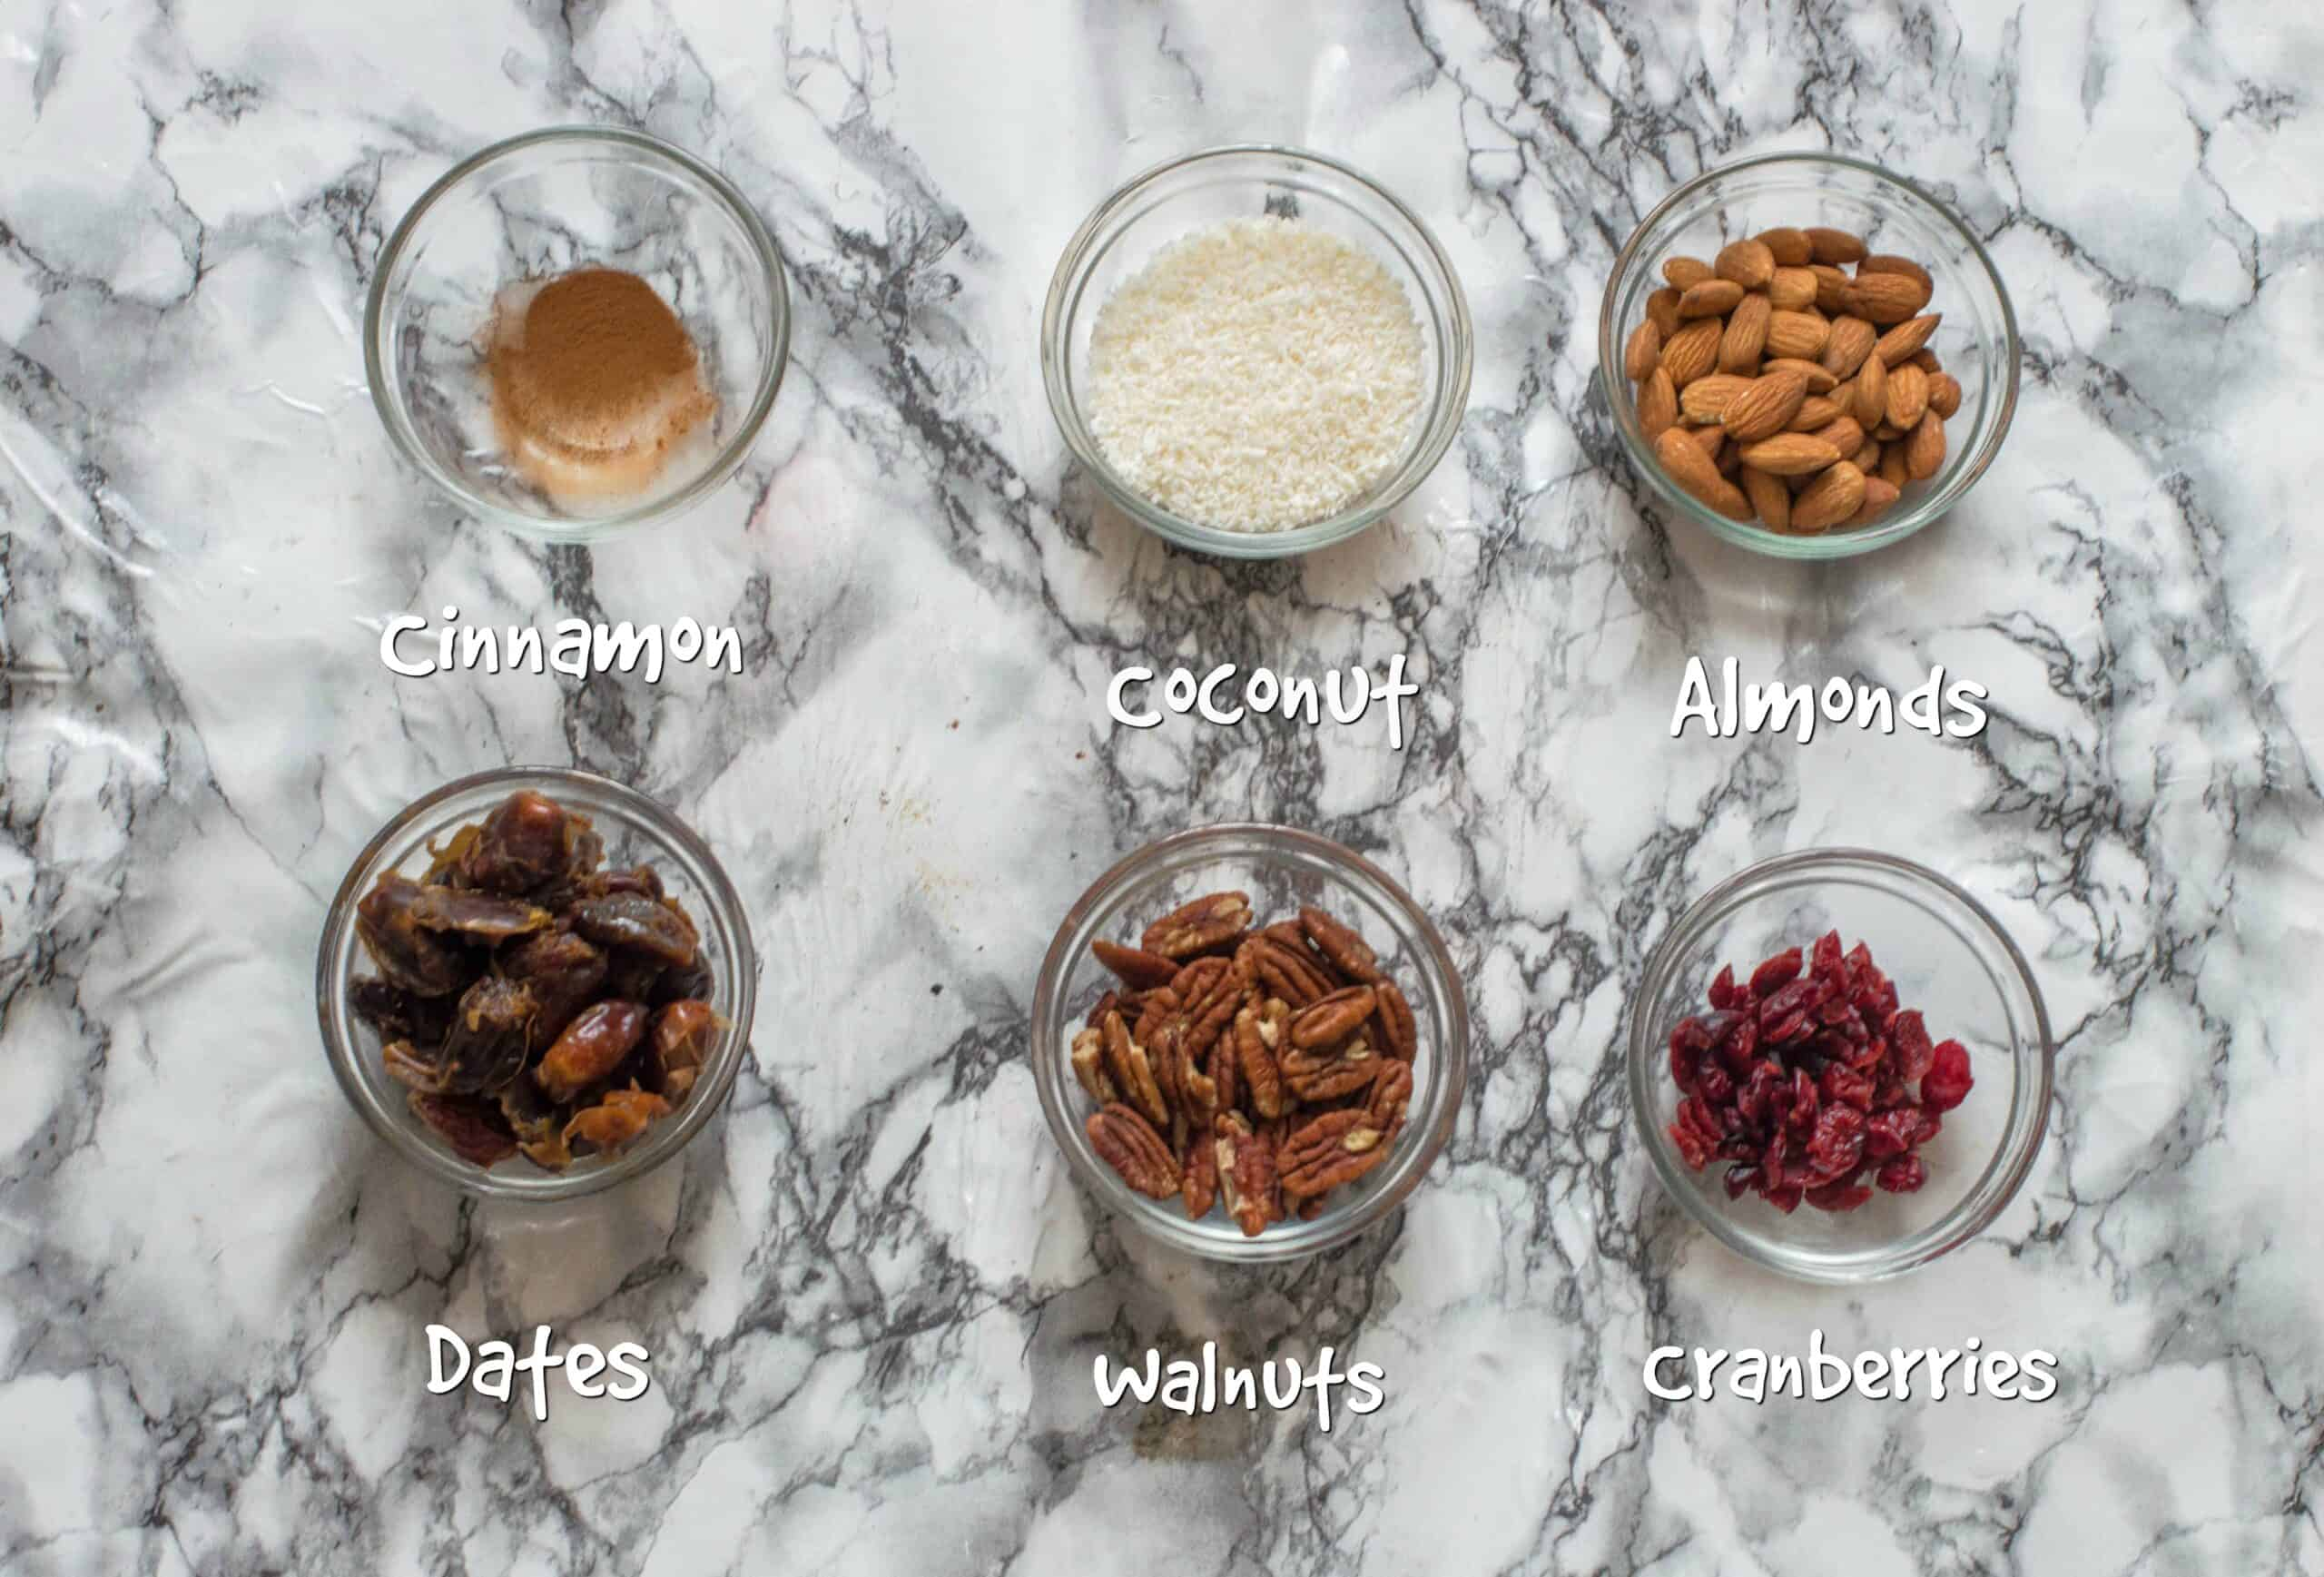 ingredients for the energy balls